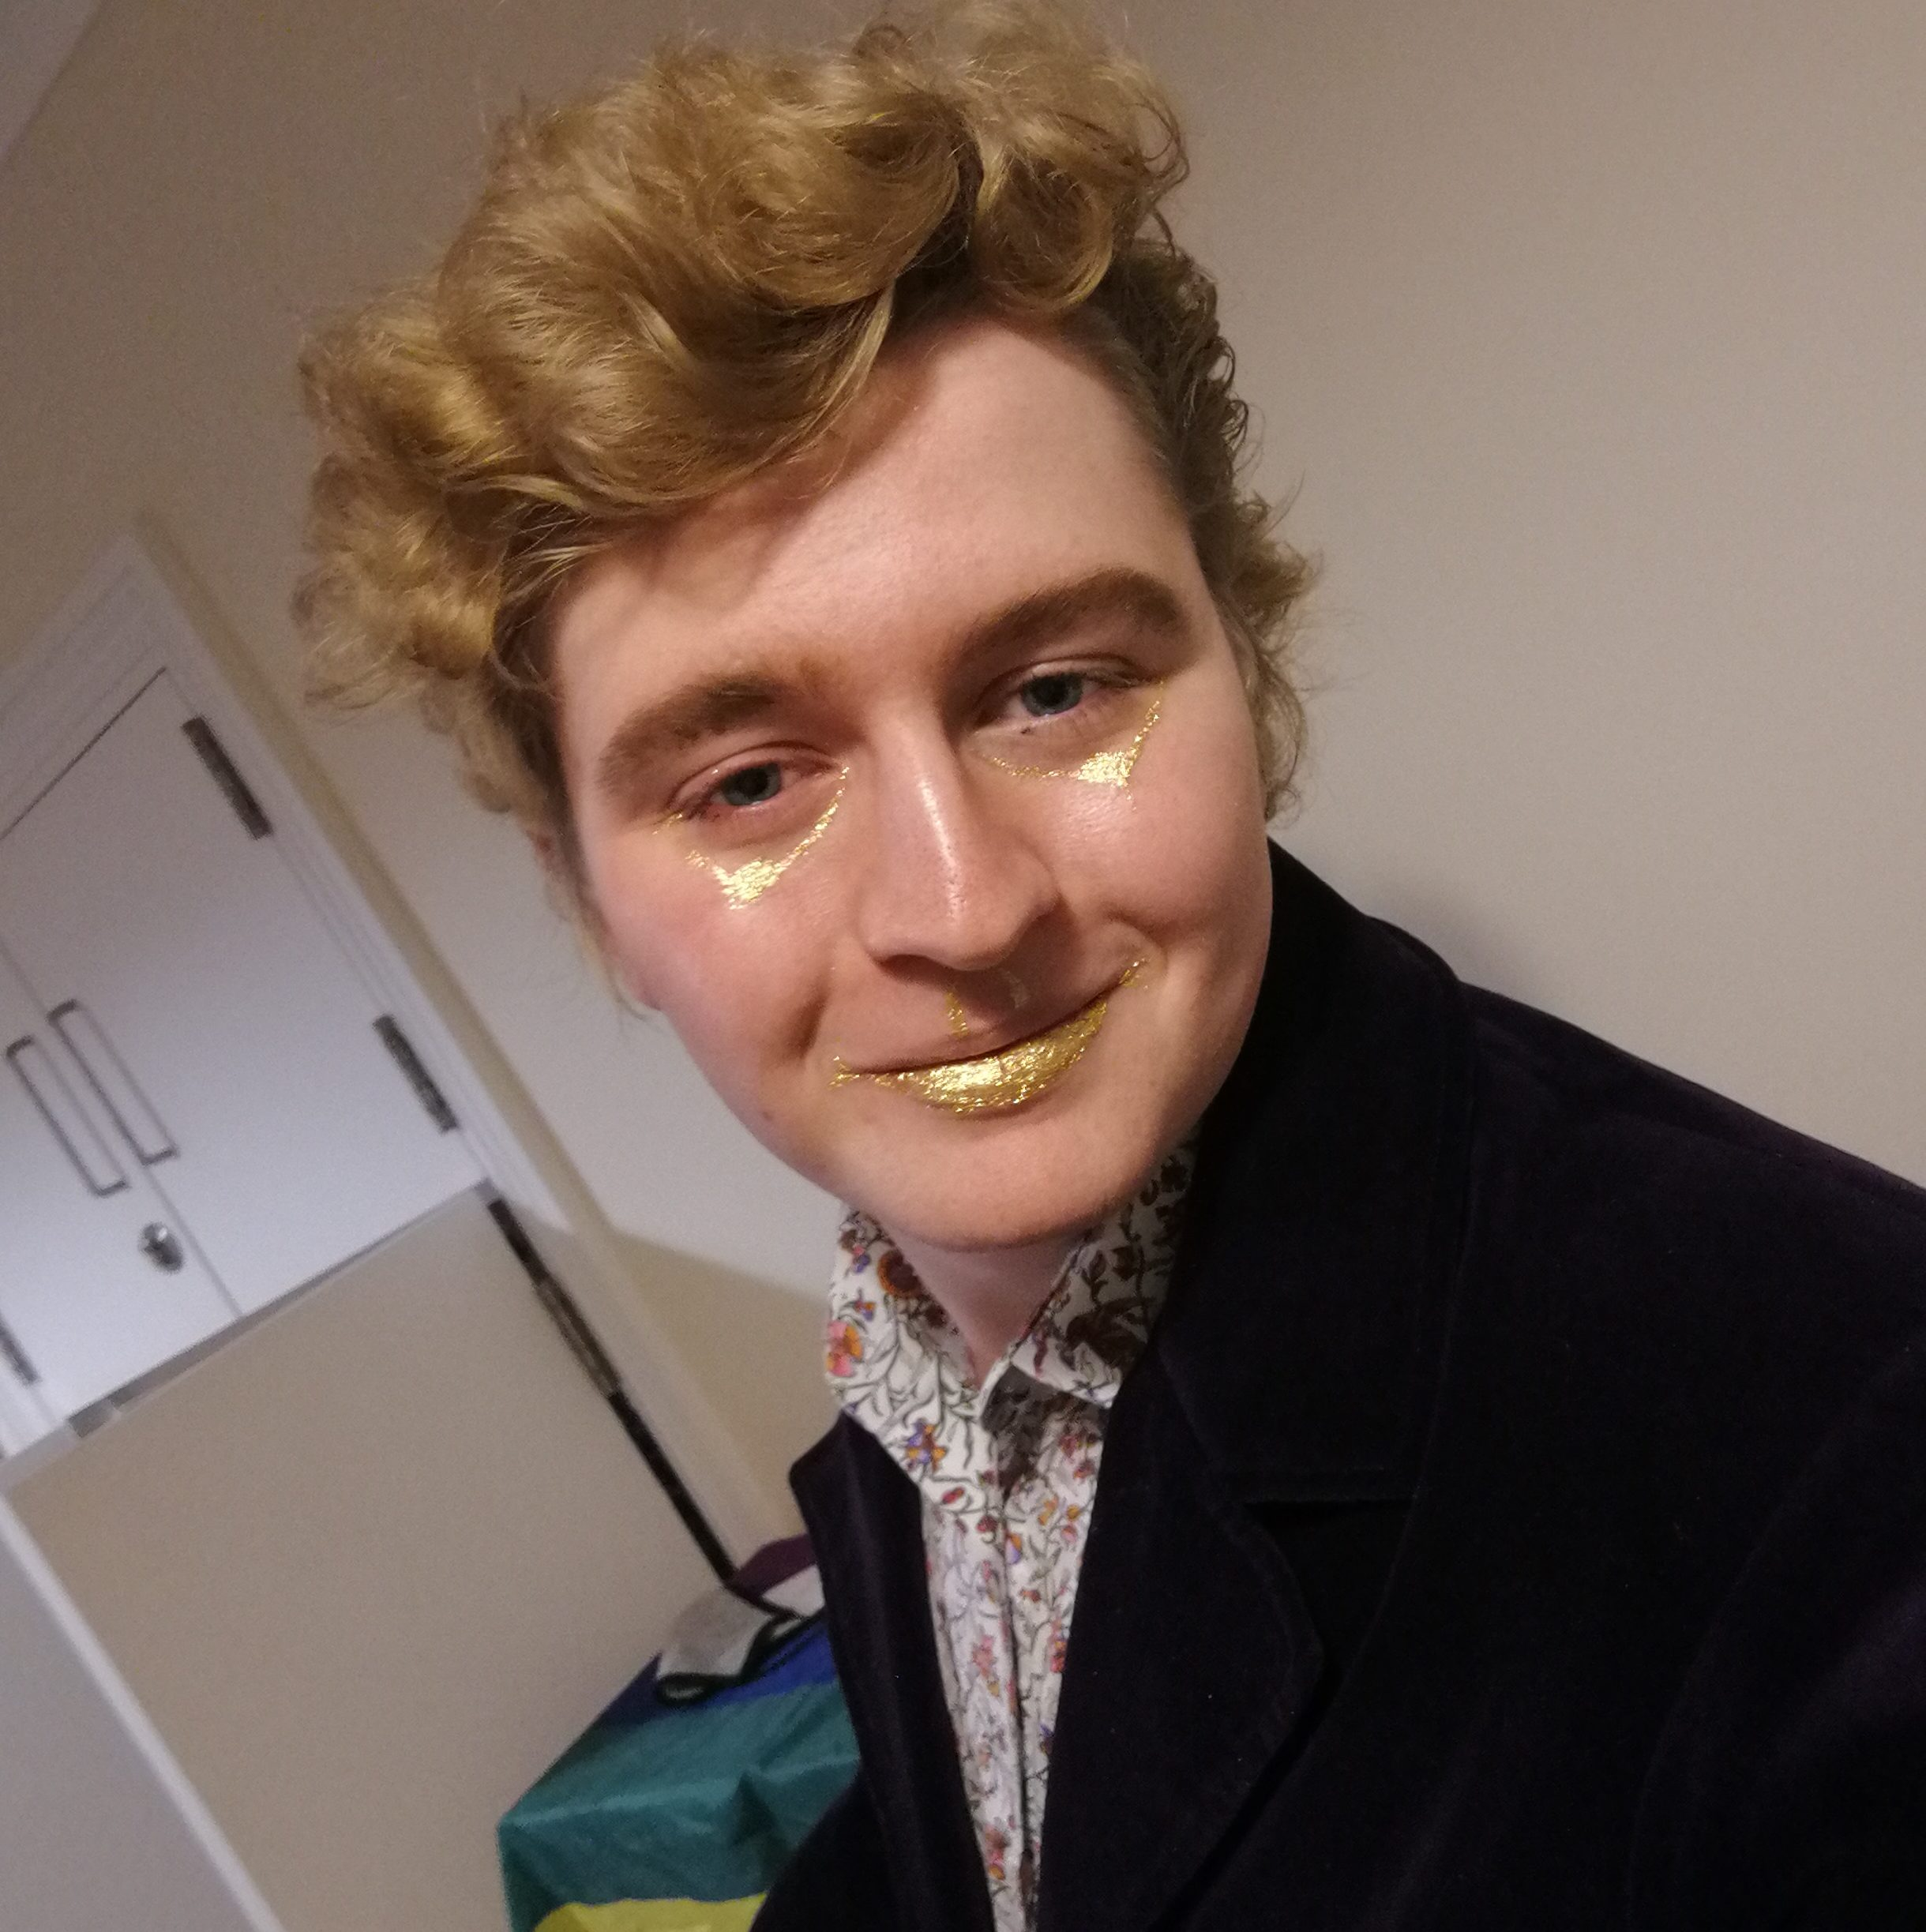 Daniel, a person with curly blonde hair, gold-glitter makeup around the eyes and on the lower lip, wearing a purple velvet coat and a patterned dress-shirt, smiles at the camera while indoors. Behind them is a piece of furniture draped with a pride flag and an open wardrobe.